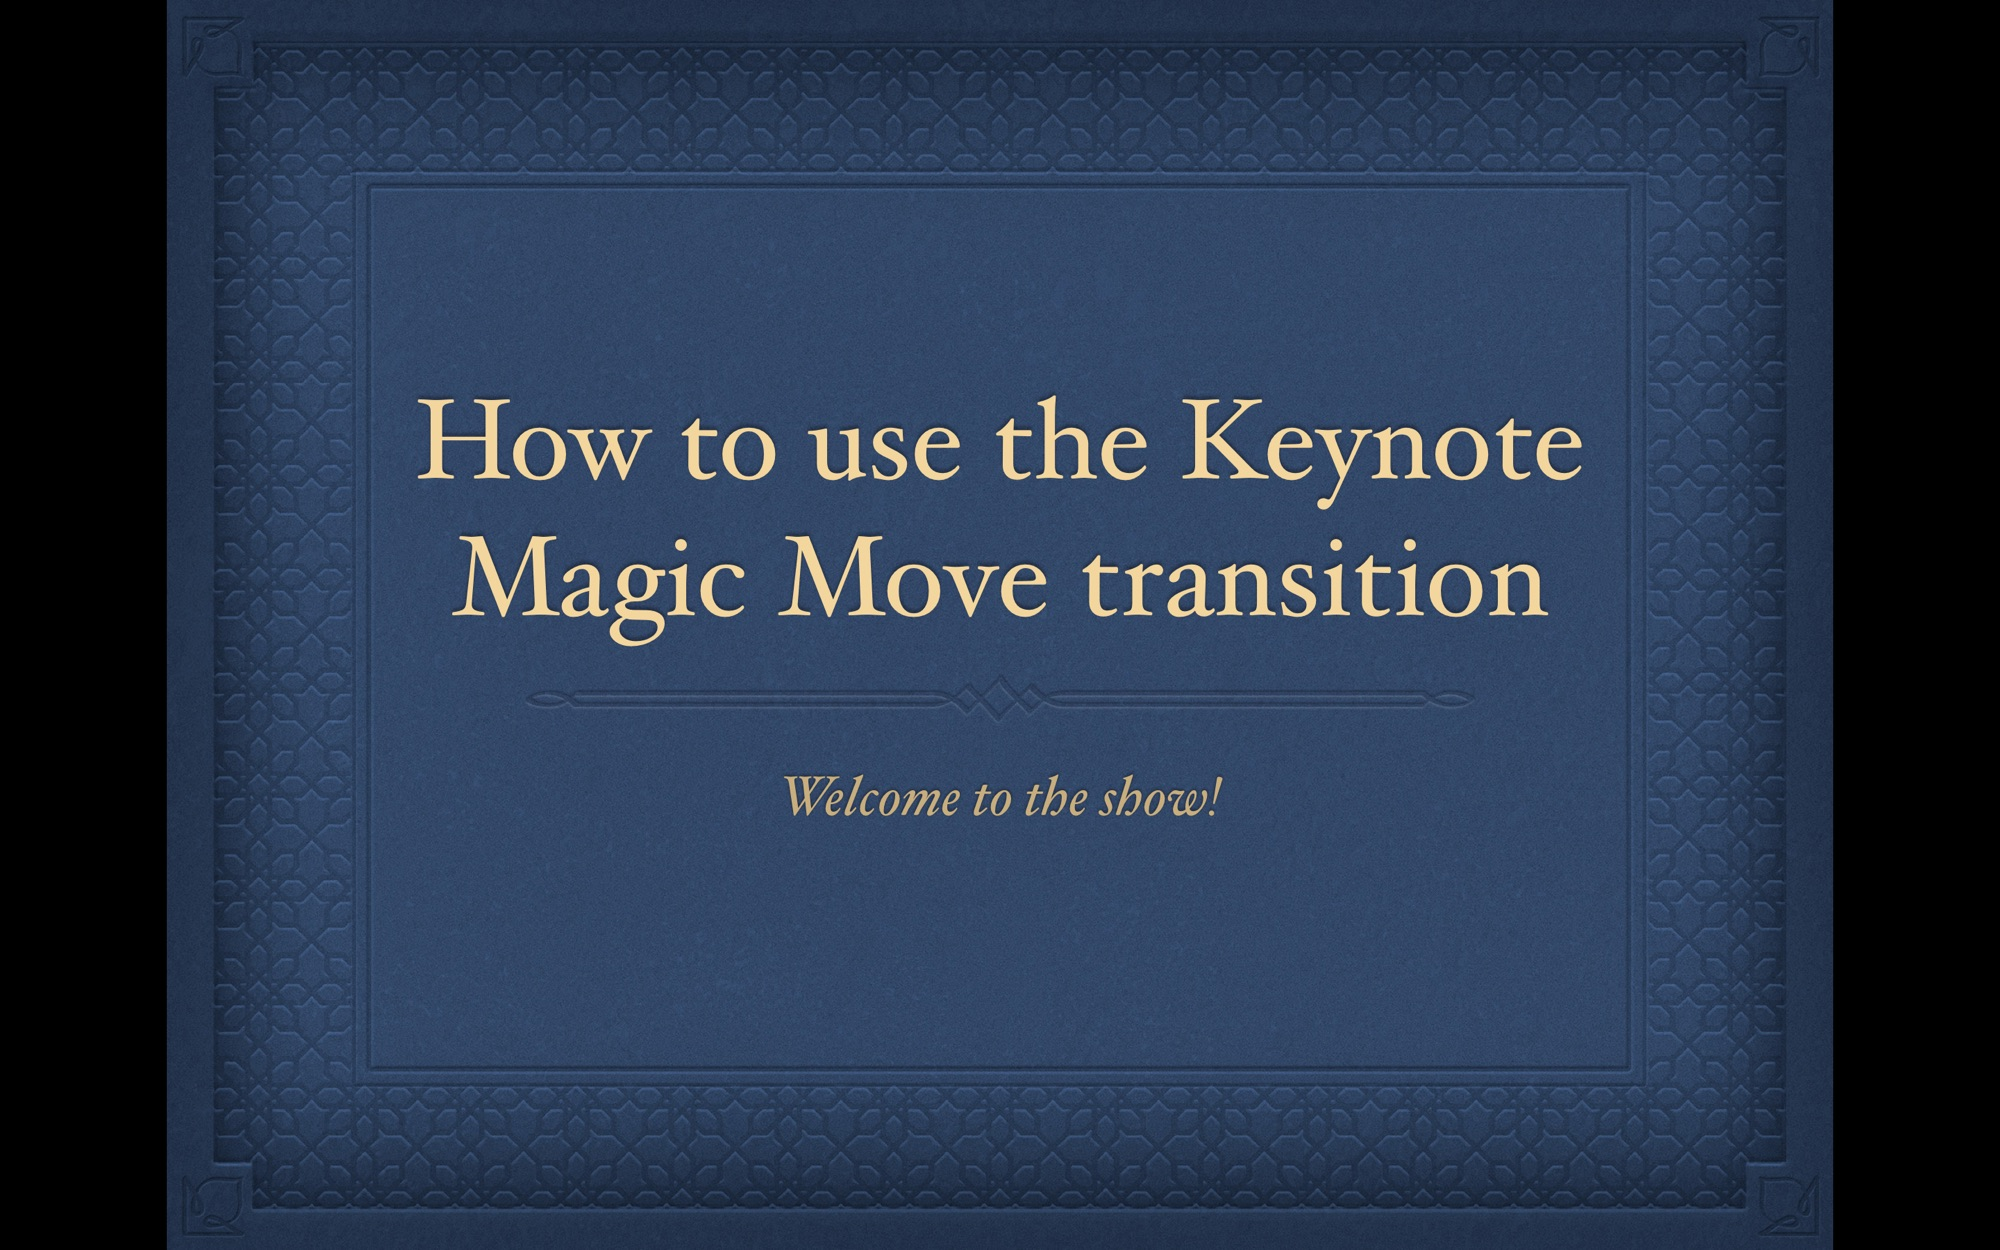 How to use the Keynote Magic Move transition